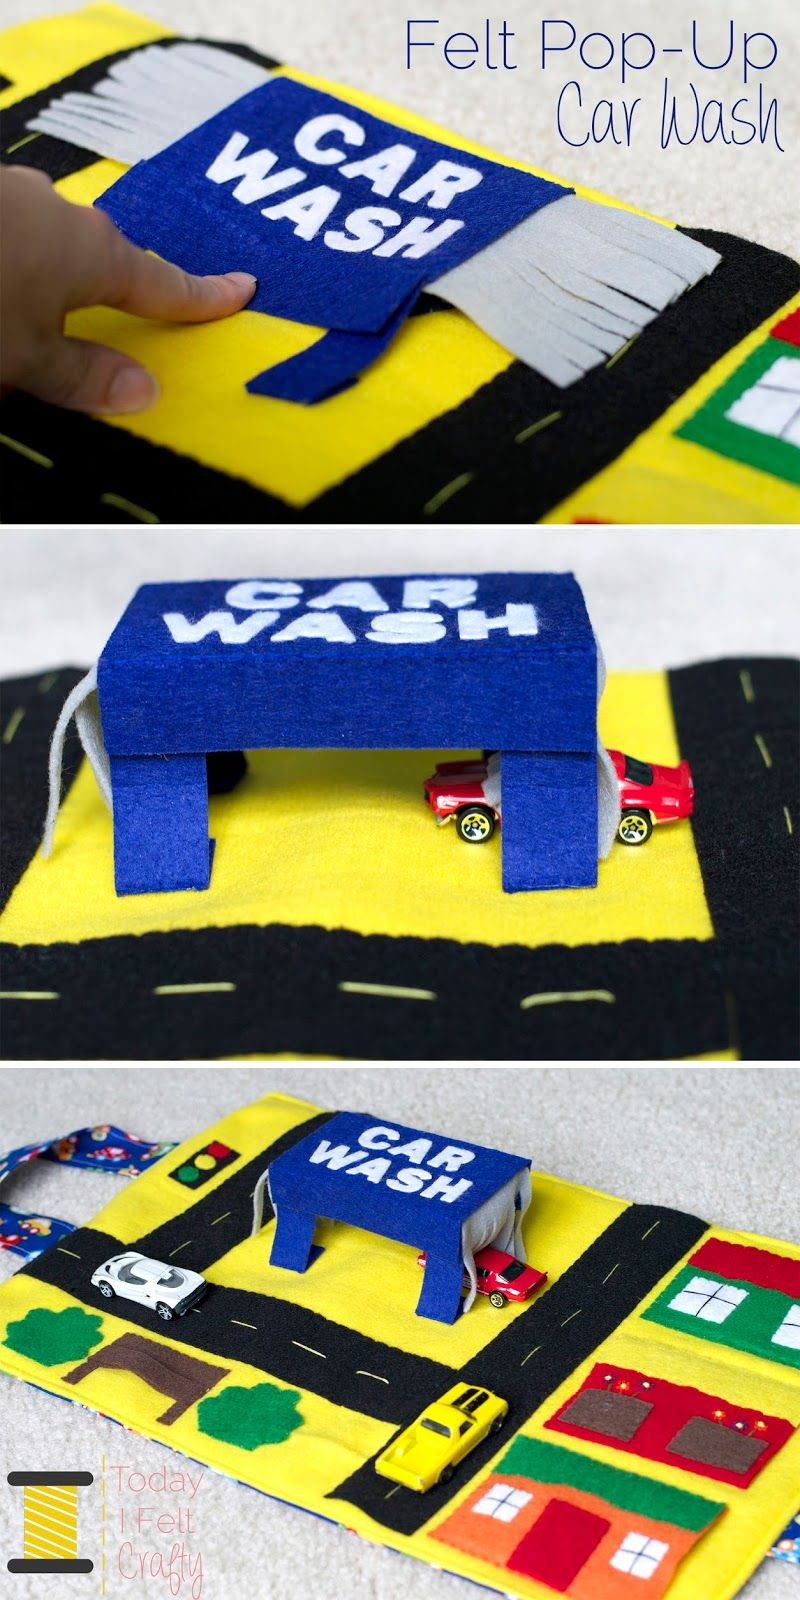 felt pop up car wash car play mat today i felt crafty